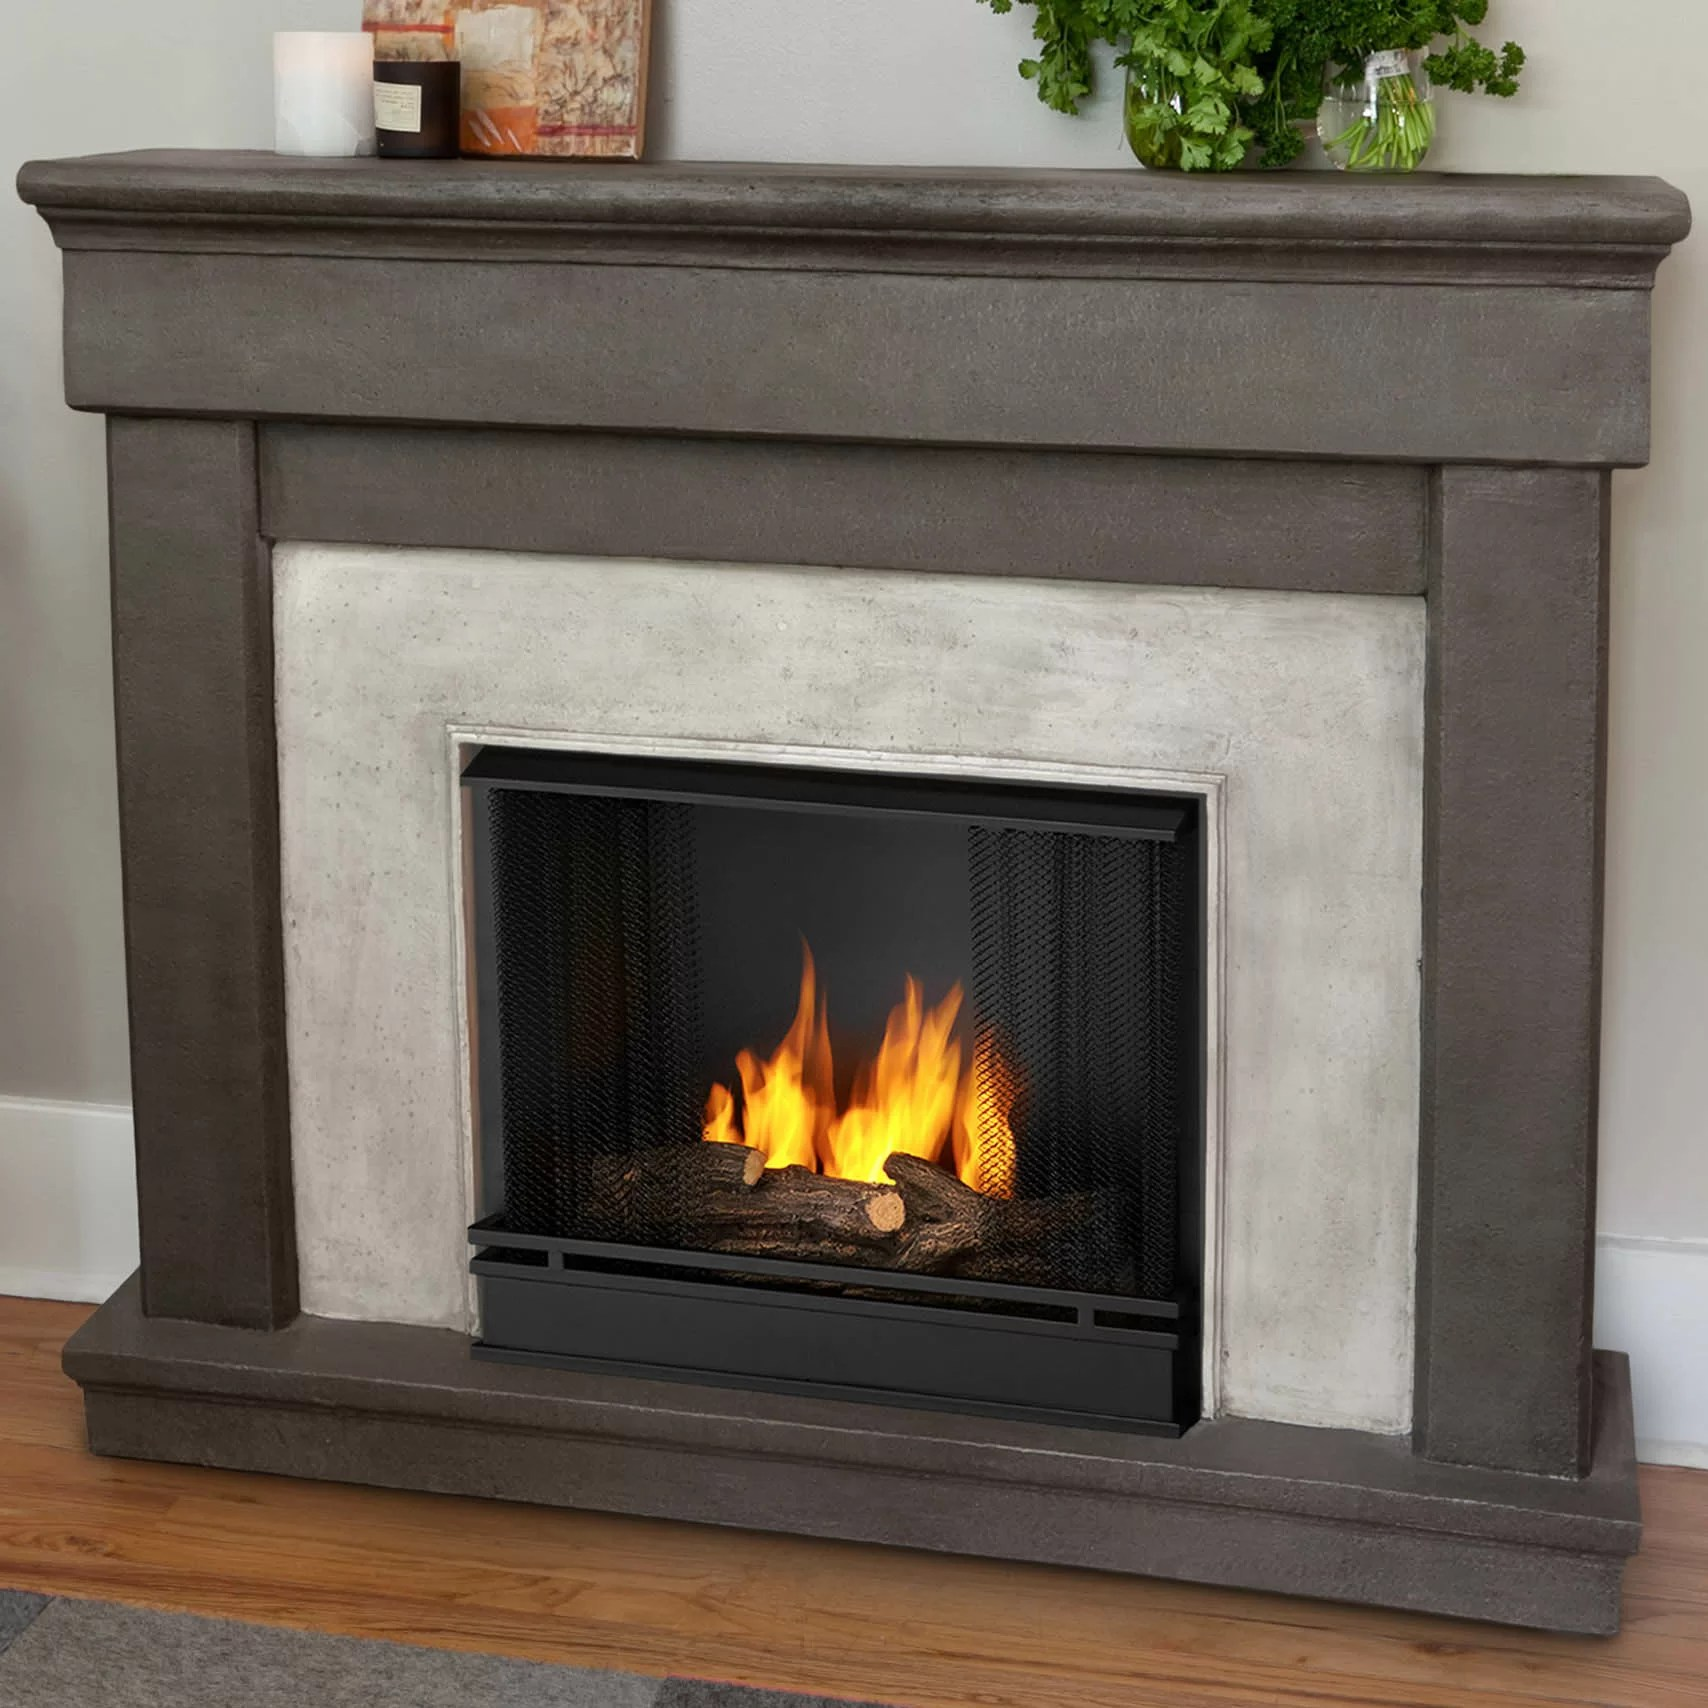 Fireplace Wall Mantels Real Flame Cast Mantel Cascade Wall Mount Gel Fuel